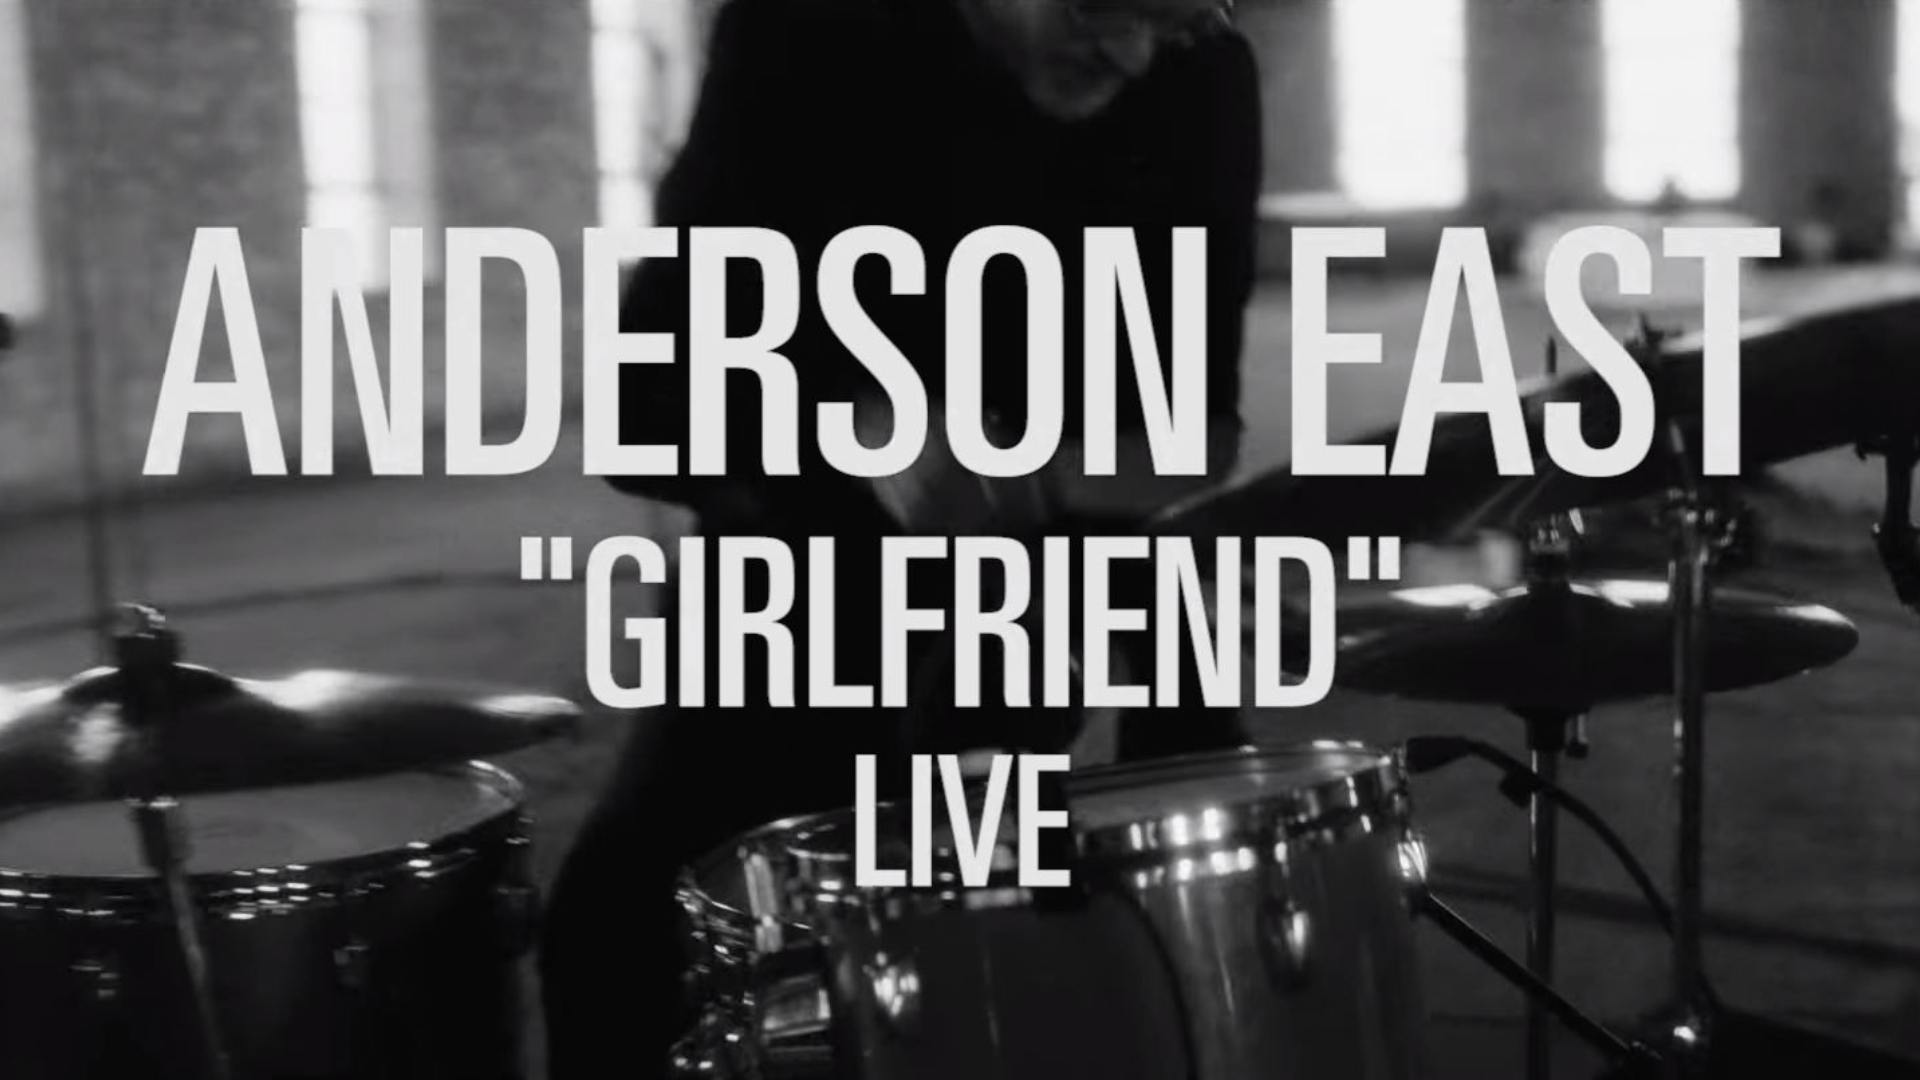 Anderson East - Girlfriend Live